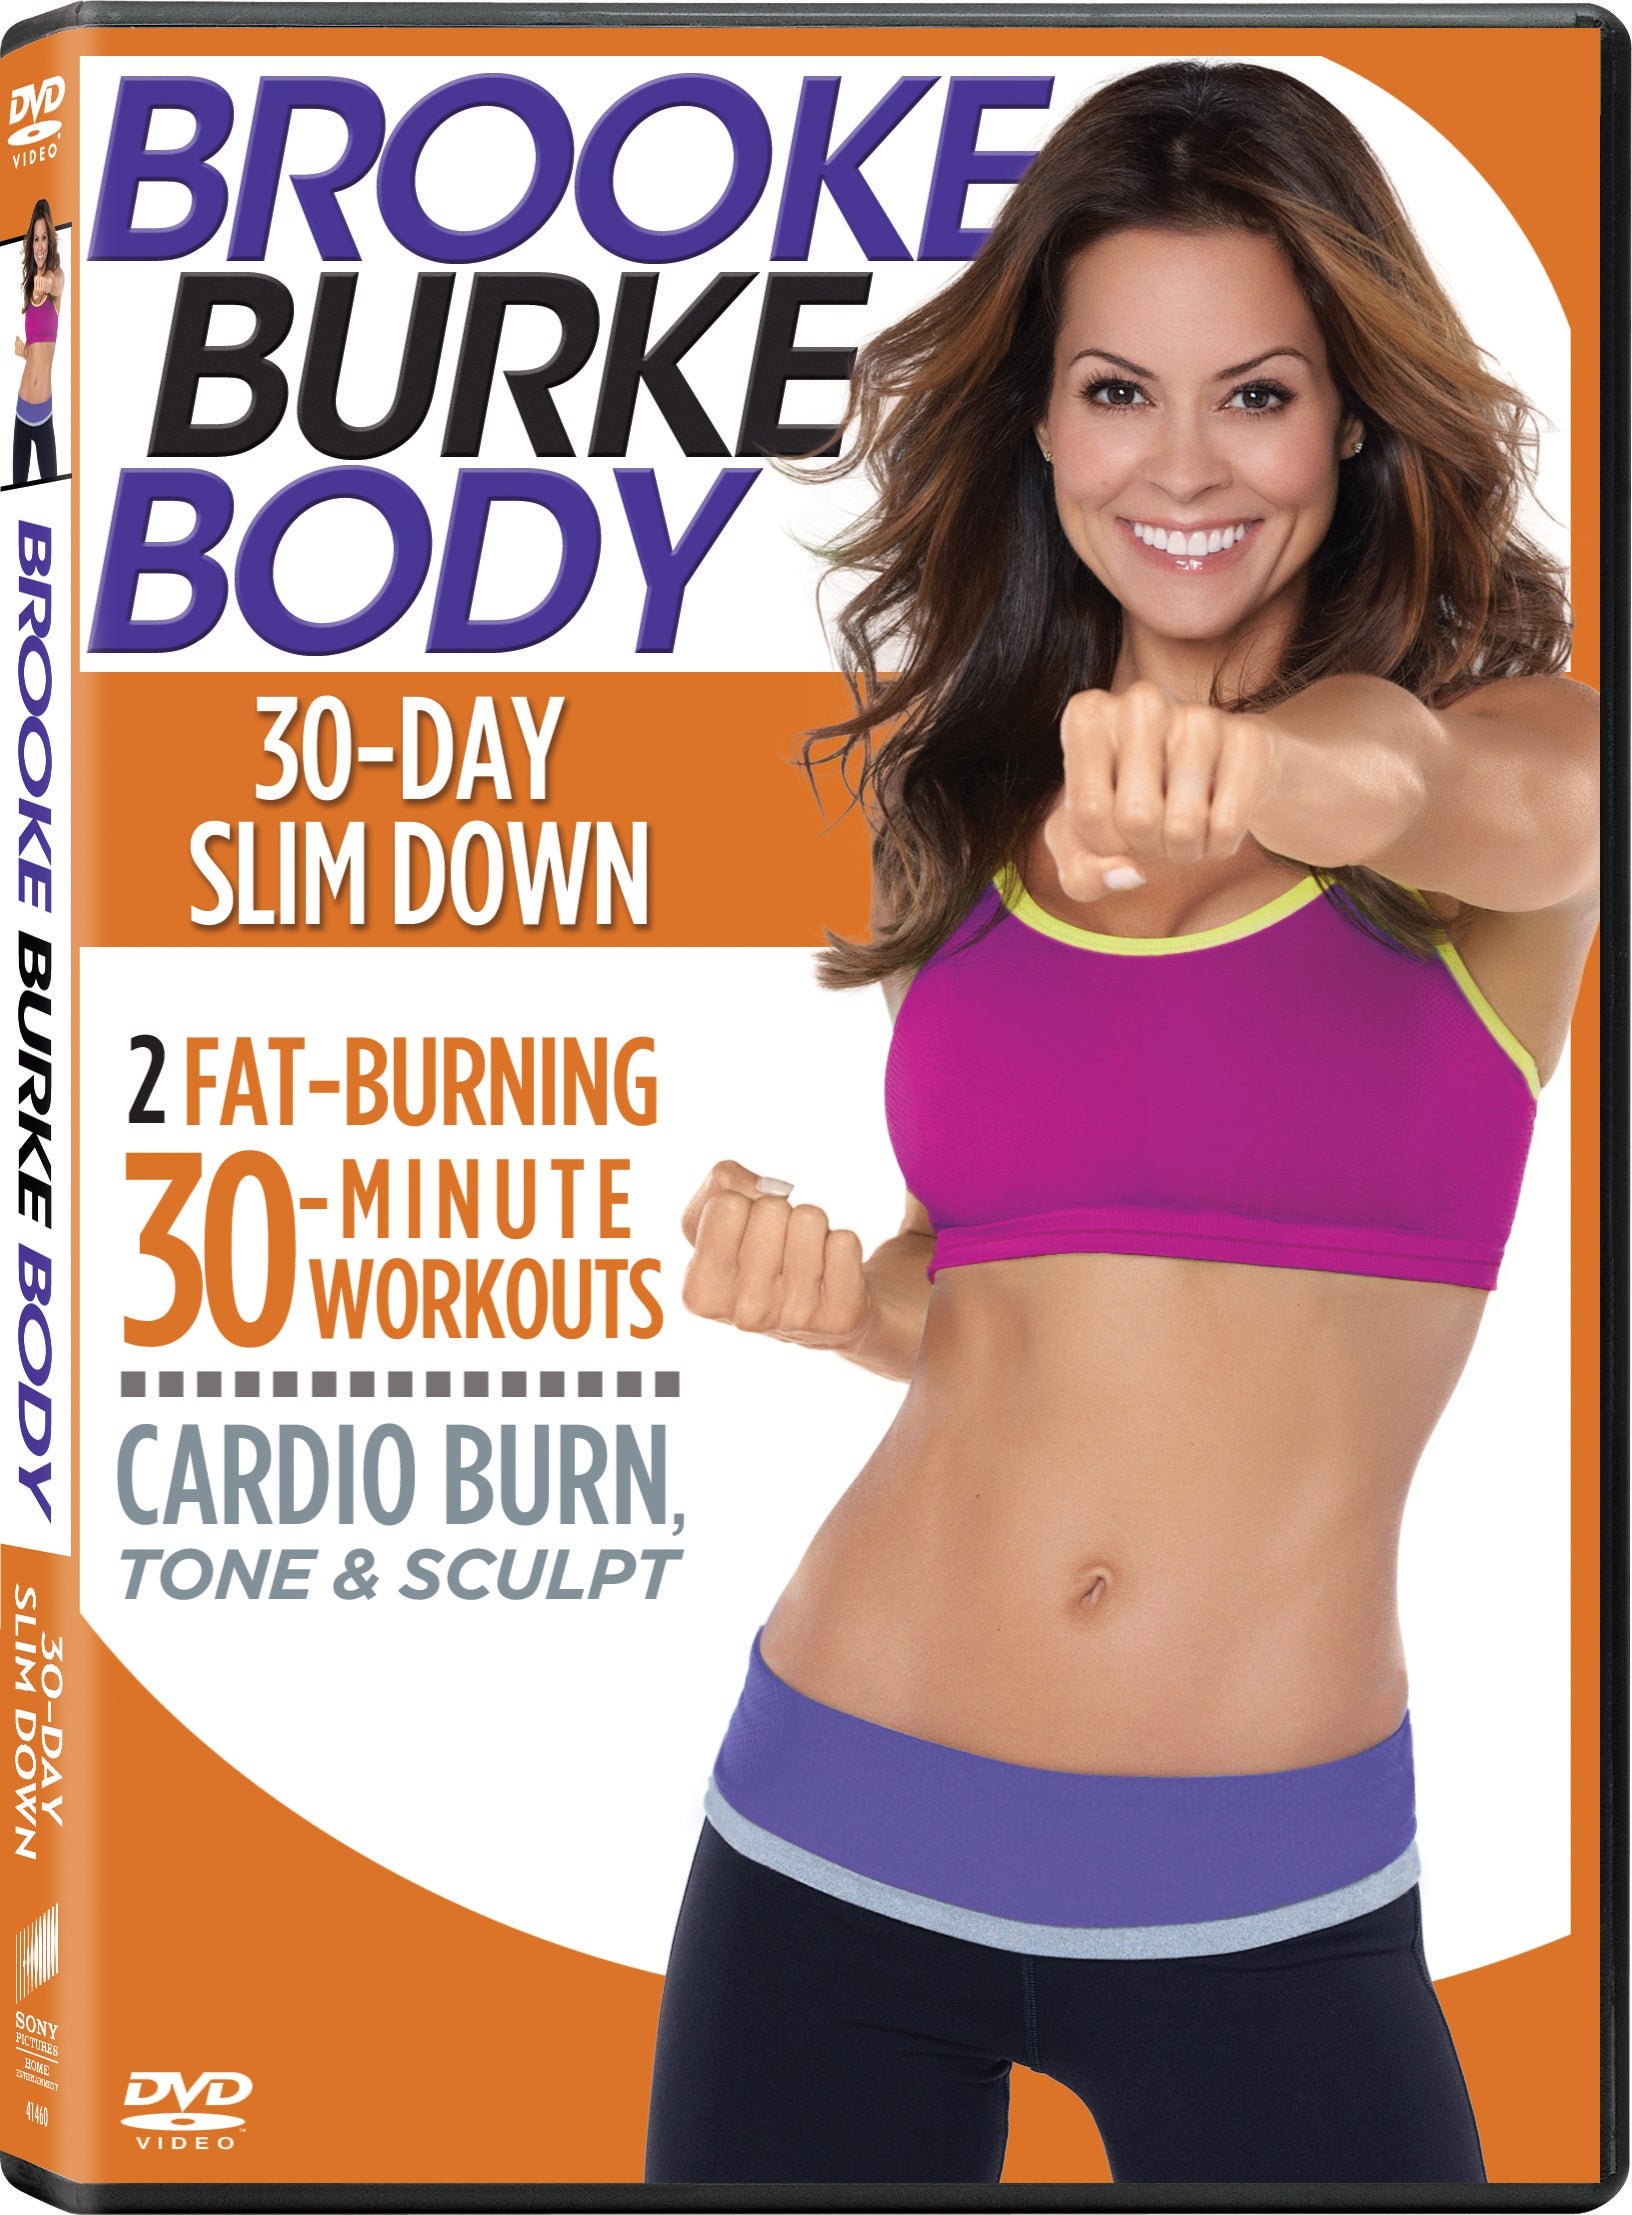 Brooke Burke Body: 30 Day Slim Down (DVD)